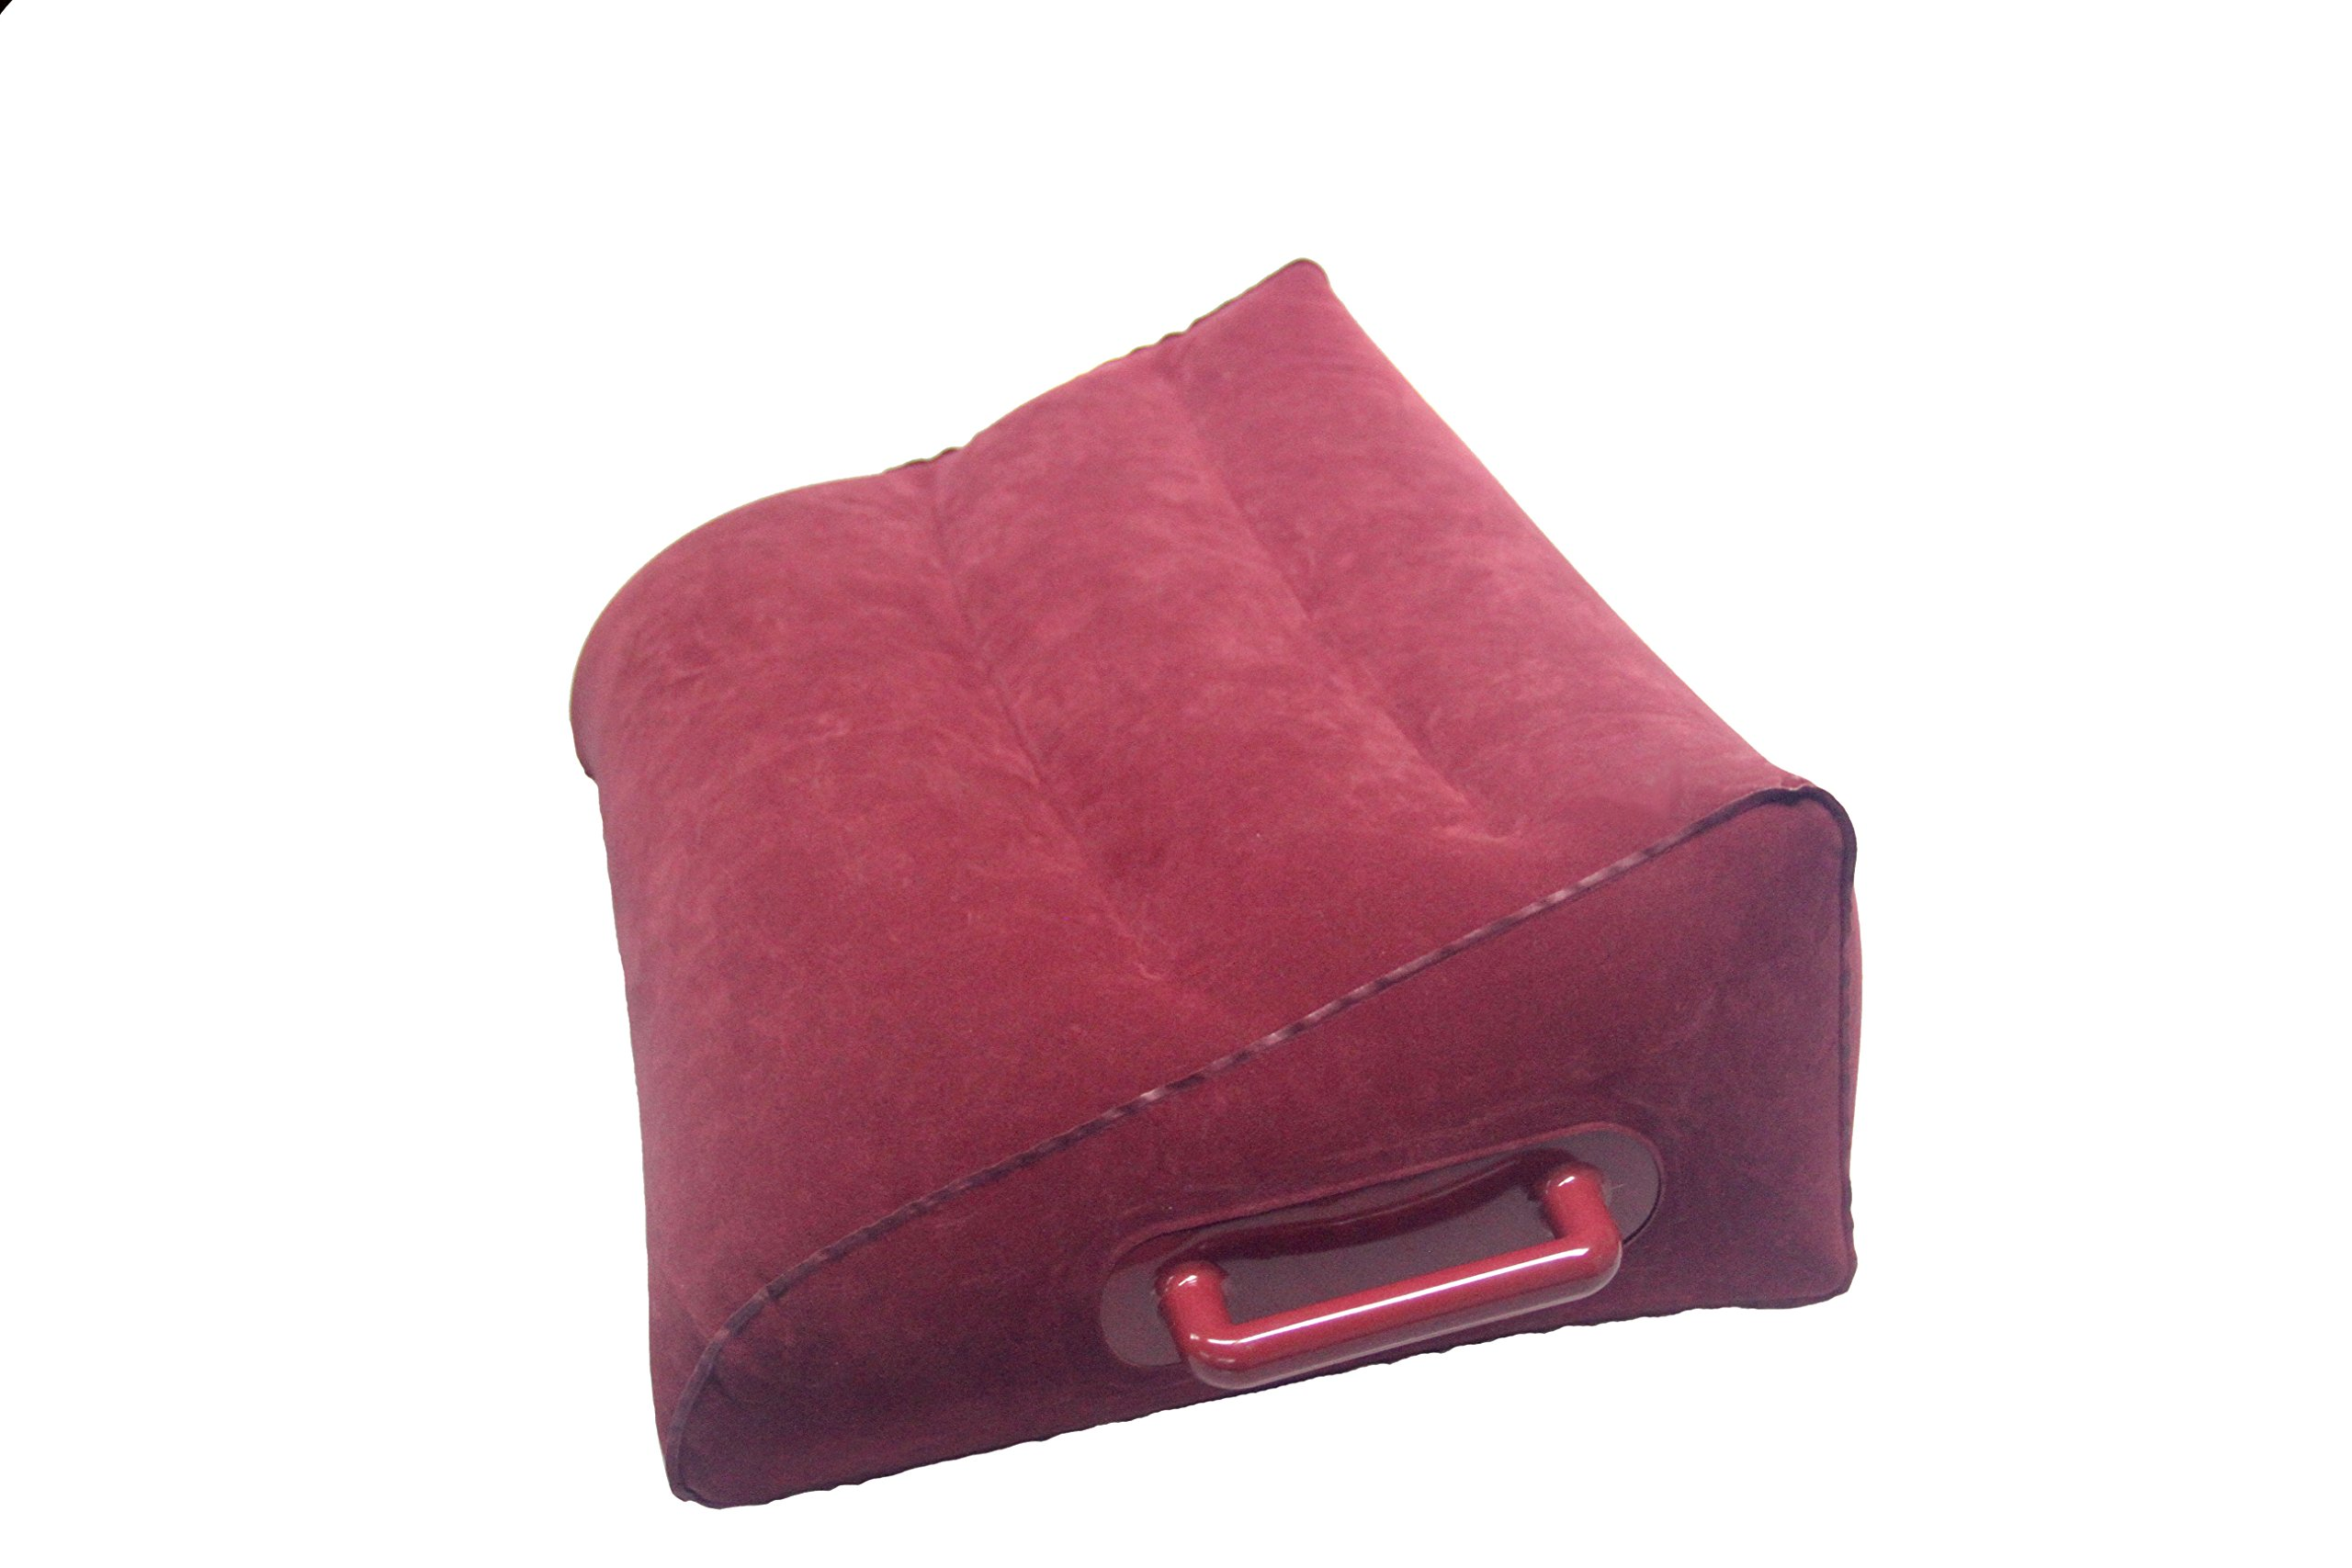 Green Baby Sex Cushion Sponge Sofa Bed Cushion For Adult Inflatable Pillow For Couples Erotic Products Sex